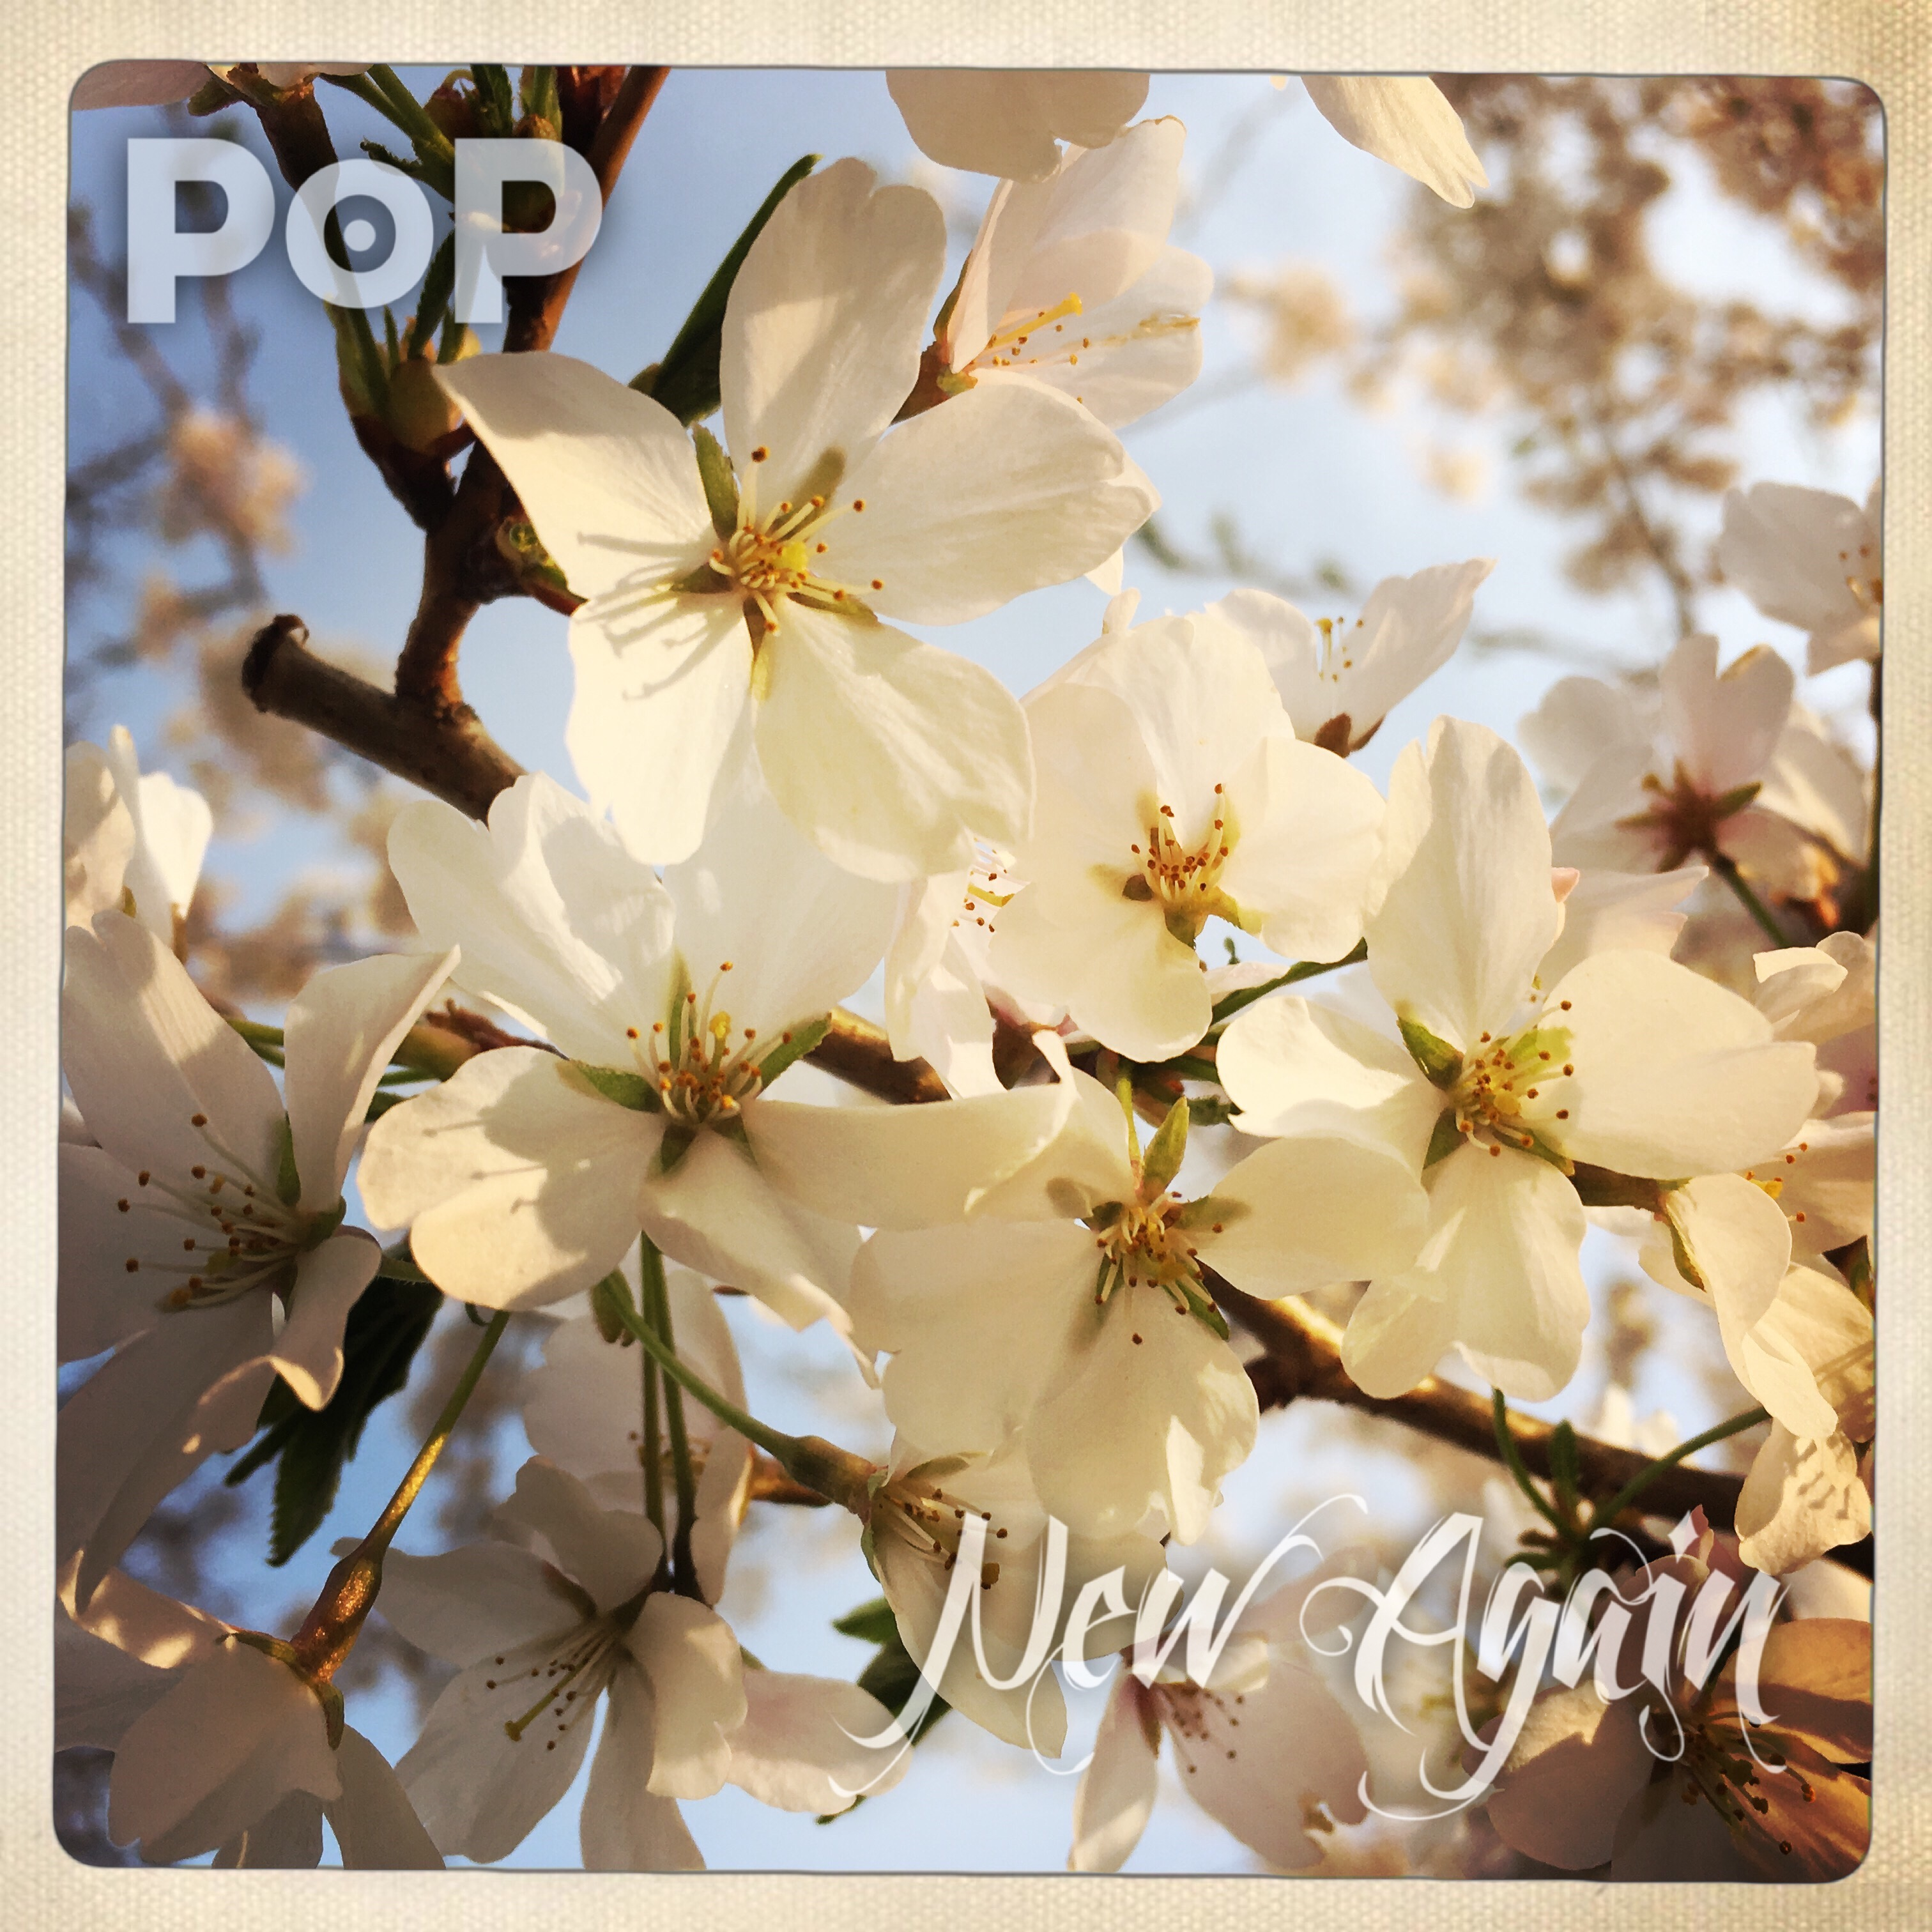 Indie Rock Band PoP's New Single 'New Again'